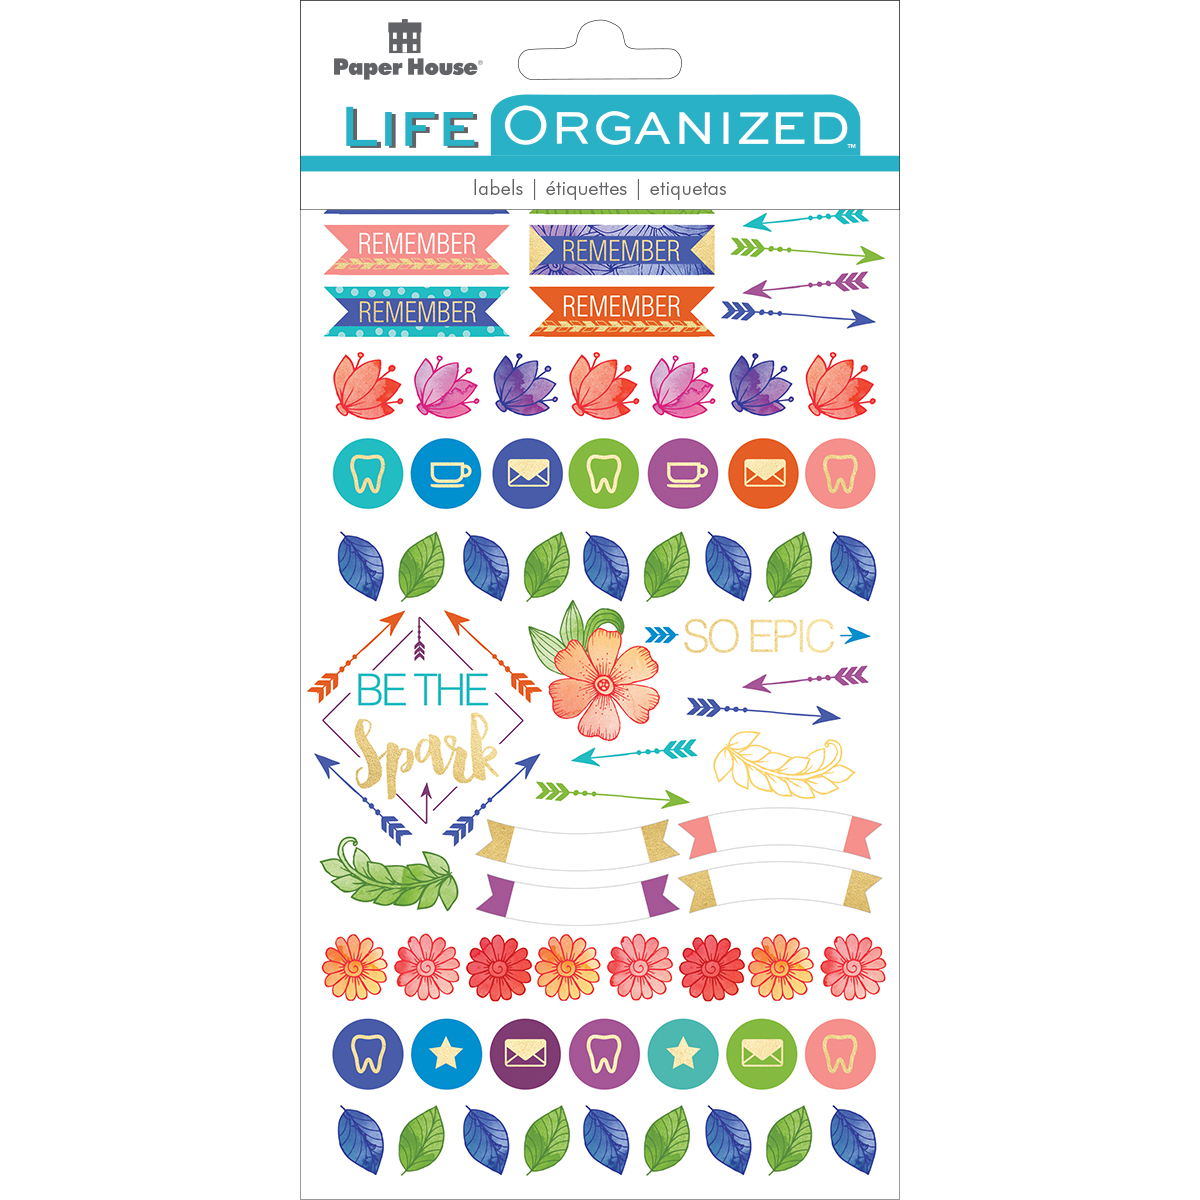 Live Bold - Paper House Life Organized Planner Stickers 4.5